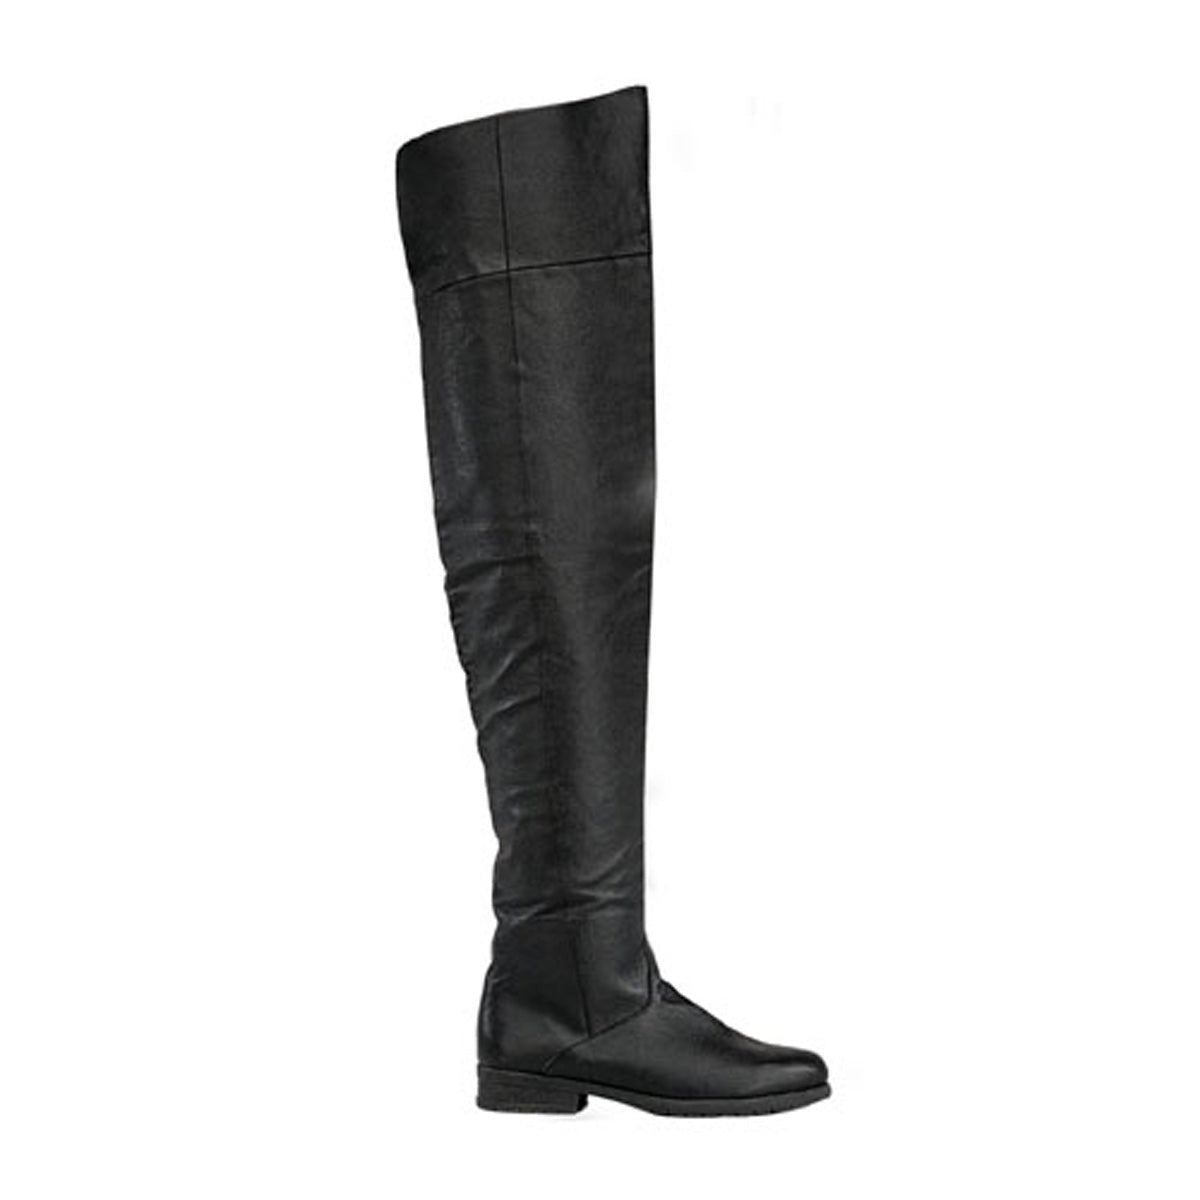 "1 1/2"" Heel, Knee High Pig Leather Boot"